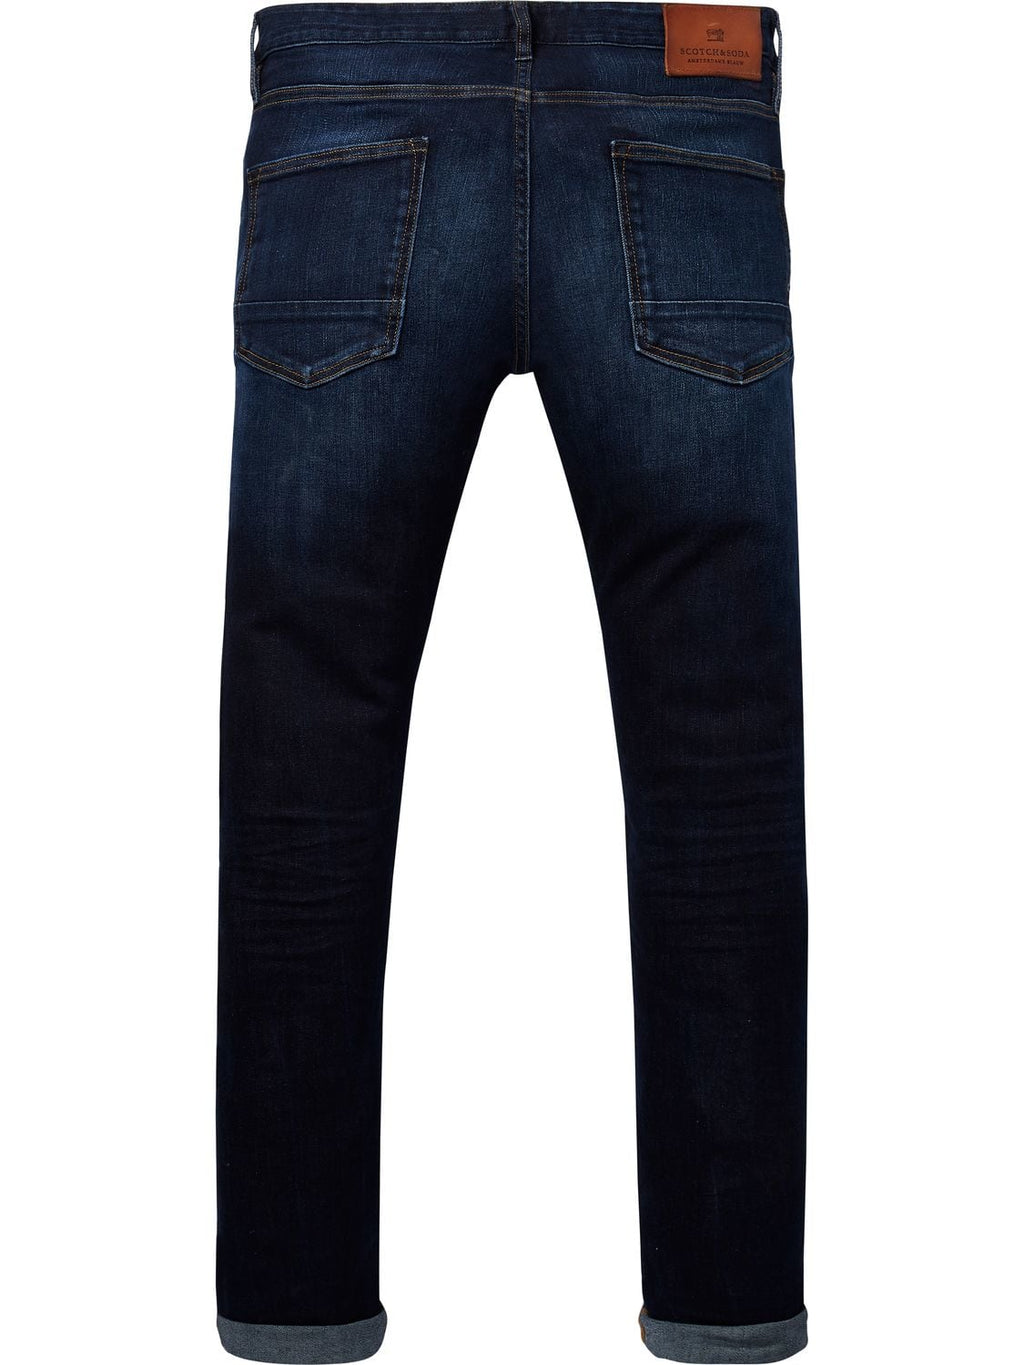 Scotch & Soda Ralston Jeans - Beaten Back